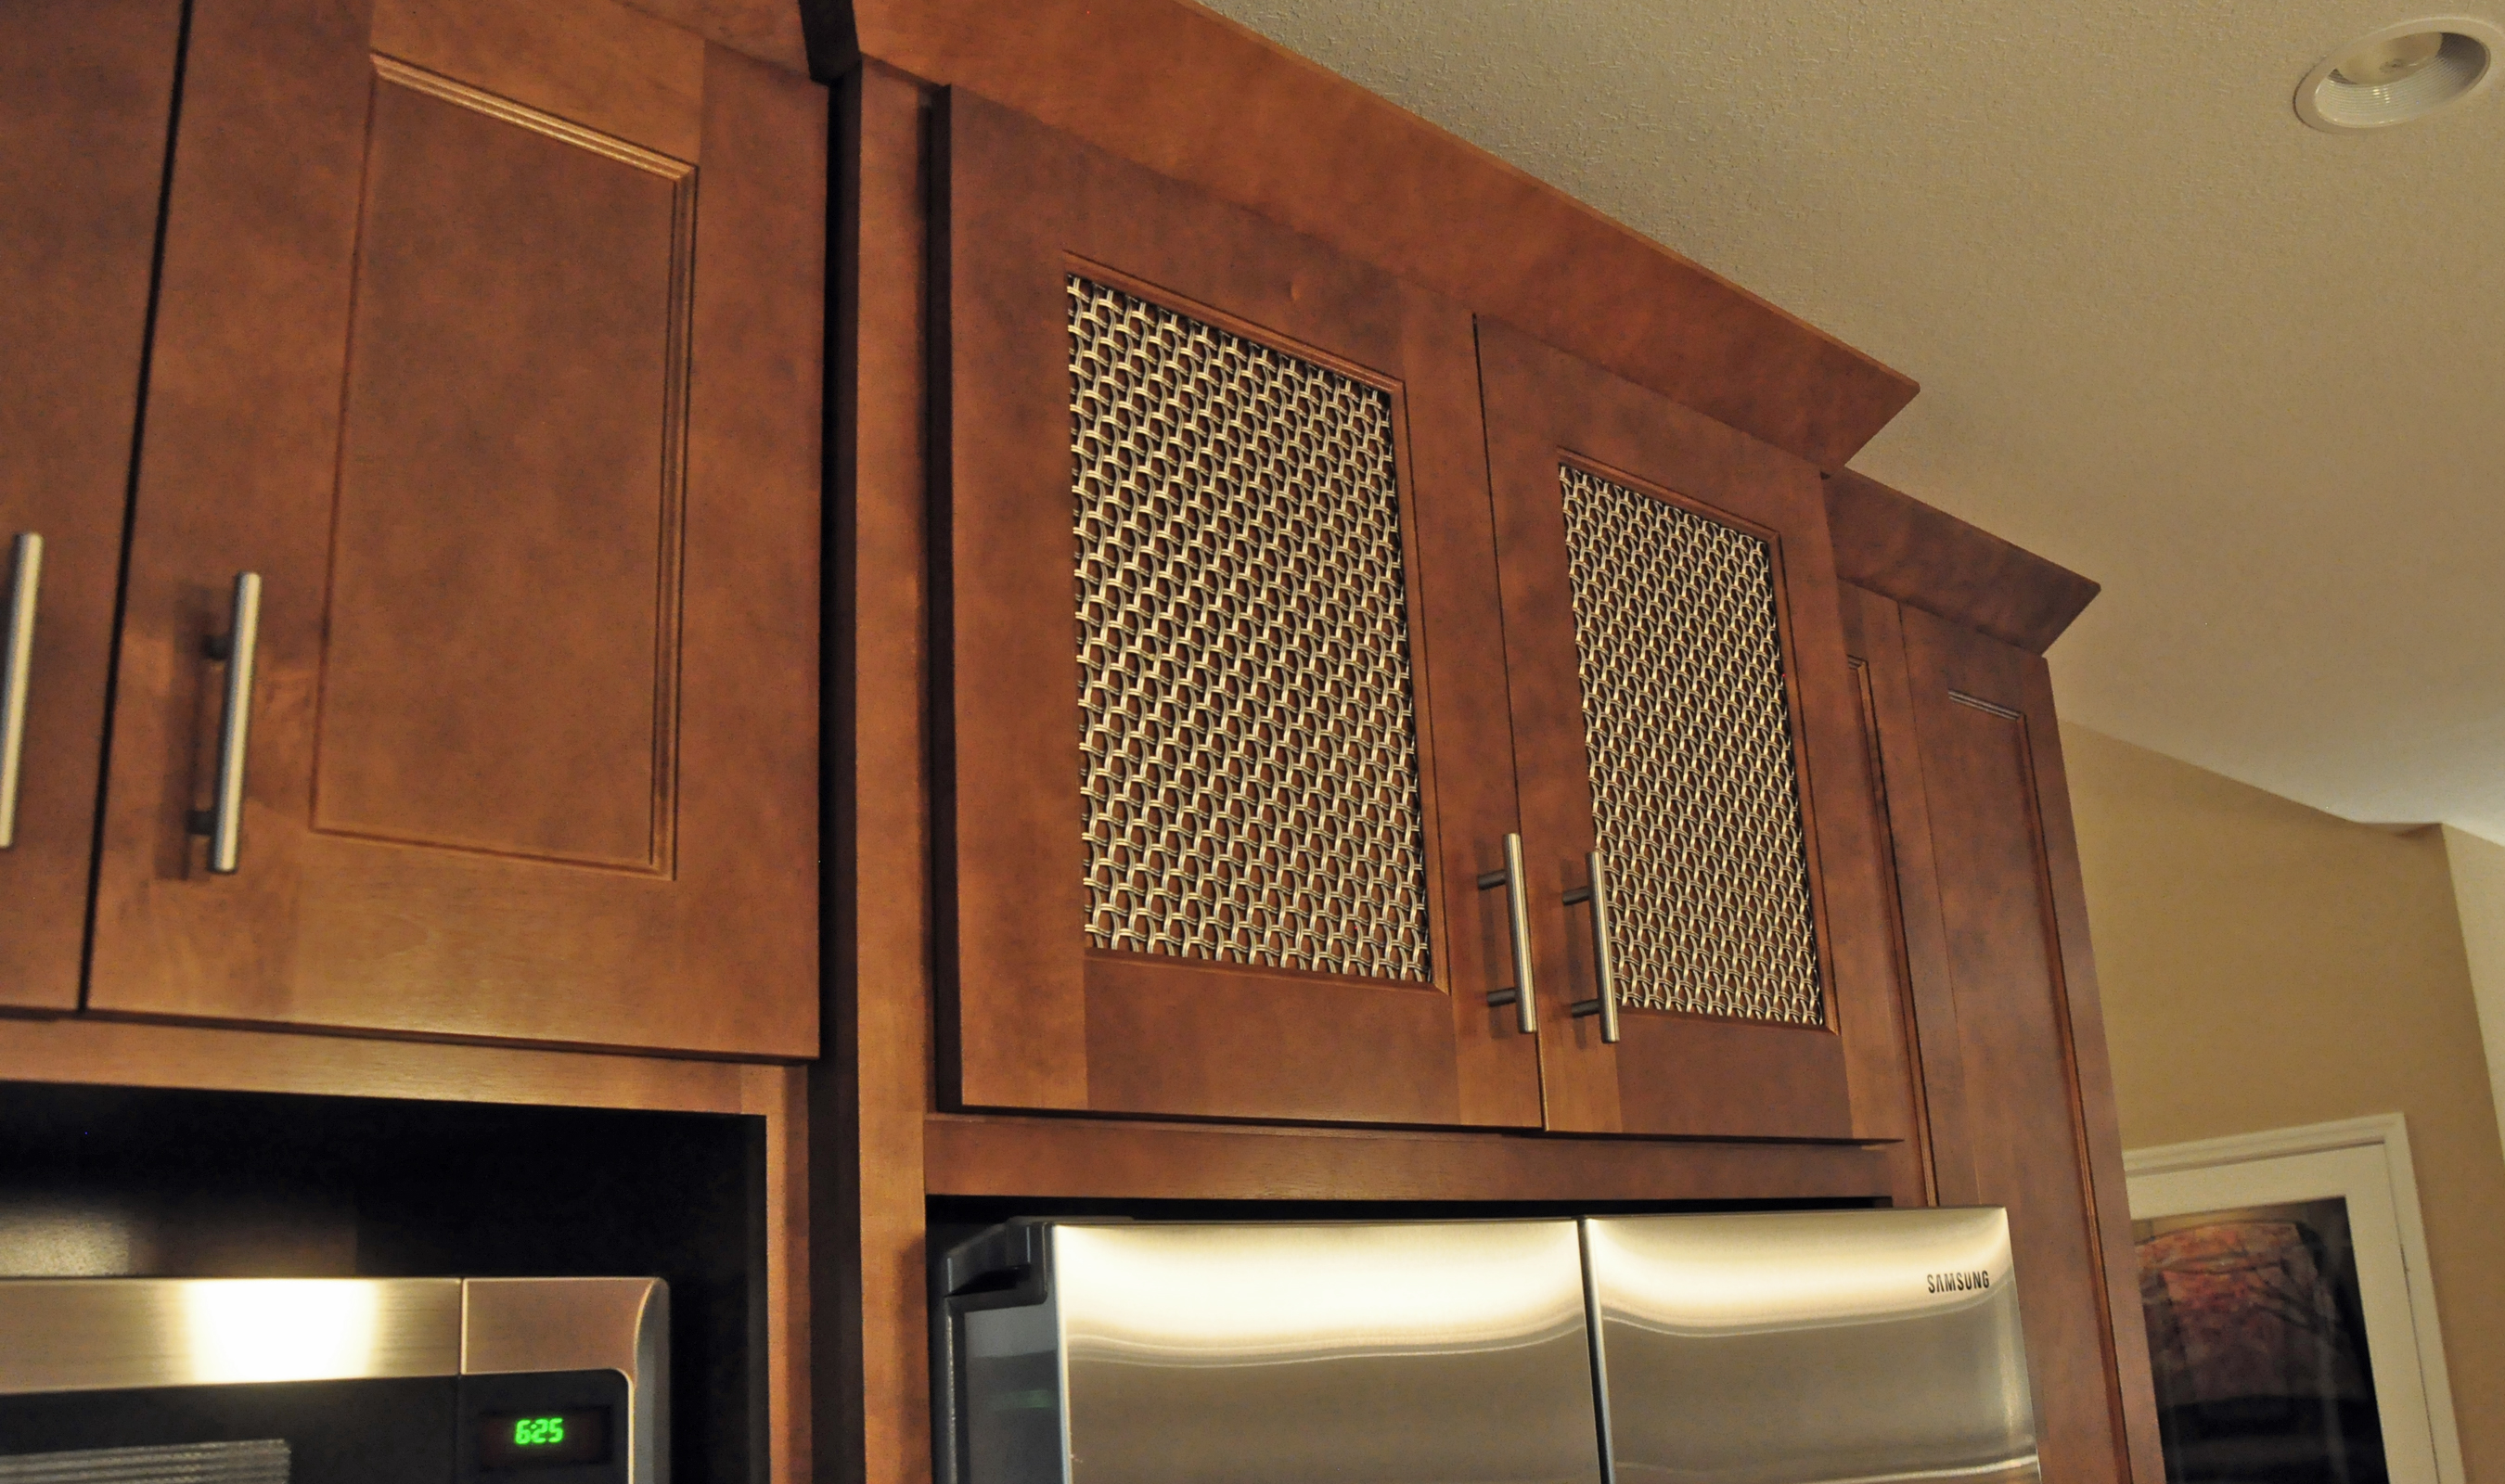 Stainless steel mesh carries a silvery accent throughout this space.